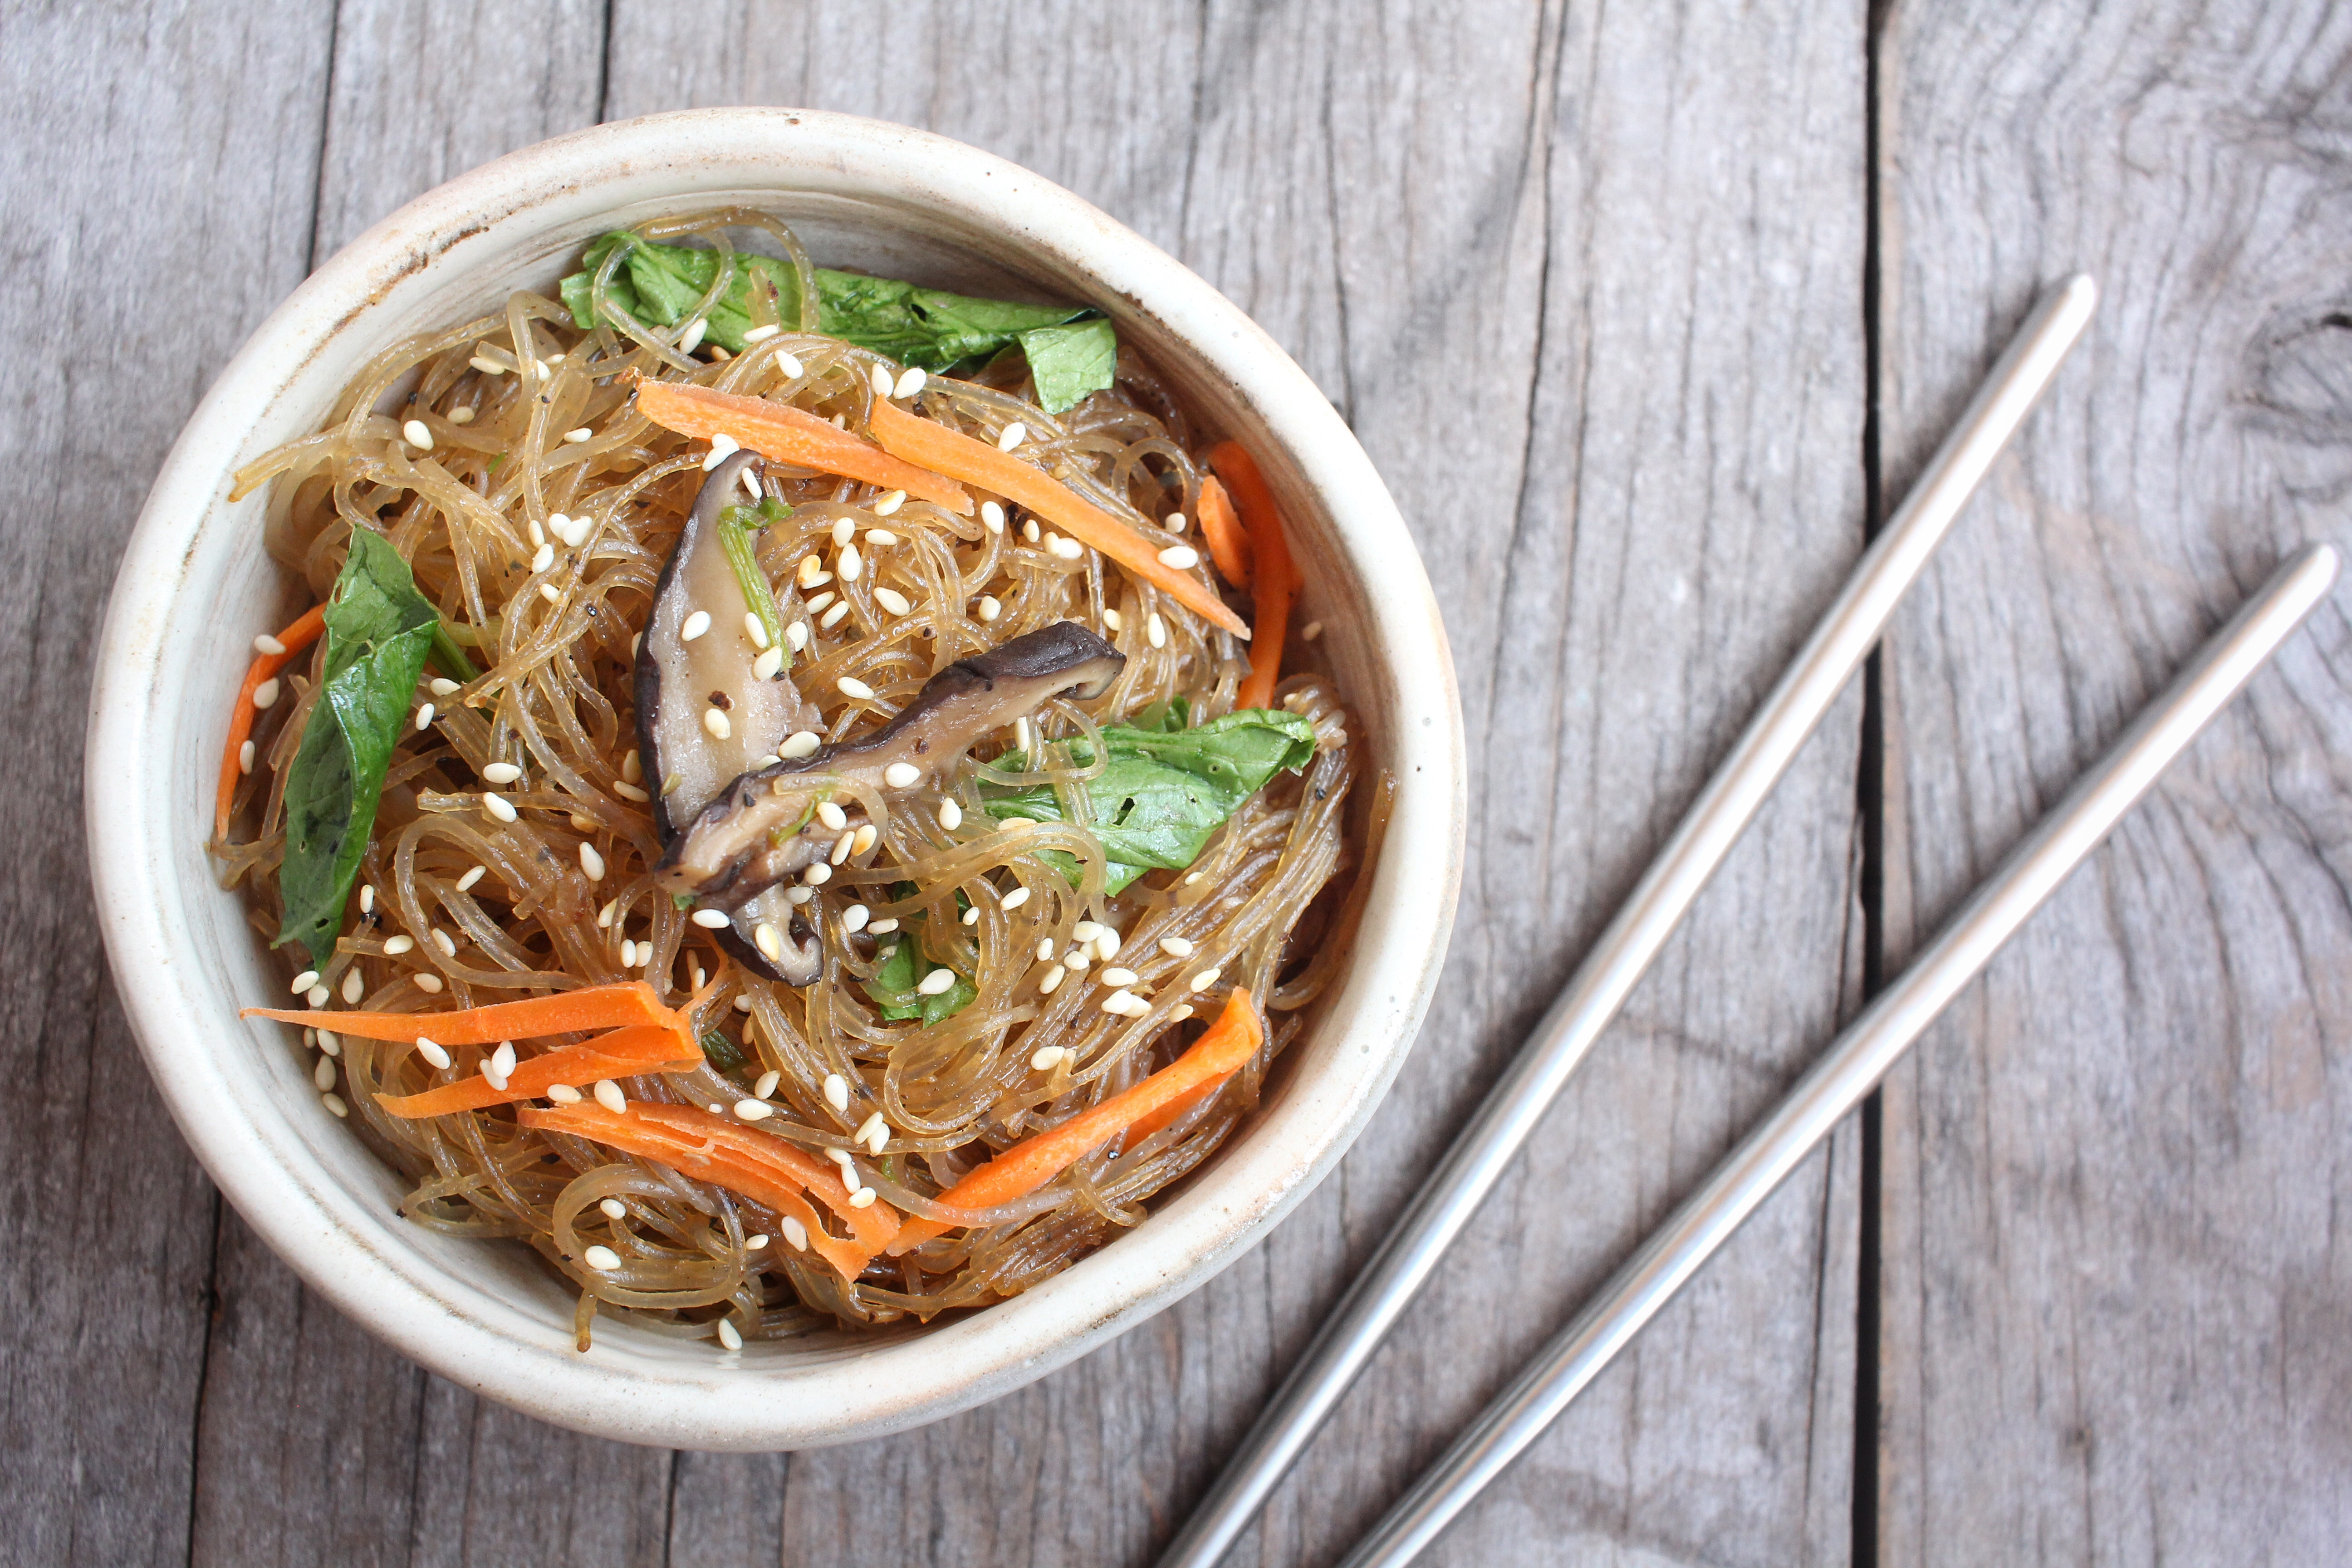 Bookmark this list of Korean catering ideas so you remember to order foods like this one, glass noodles.